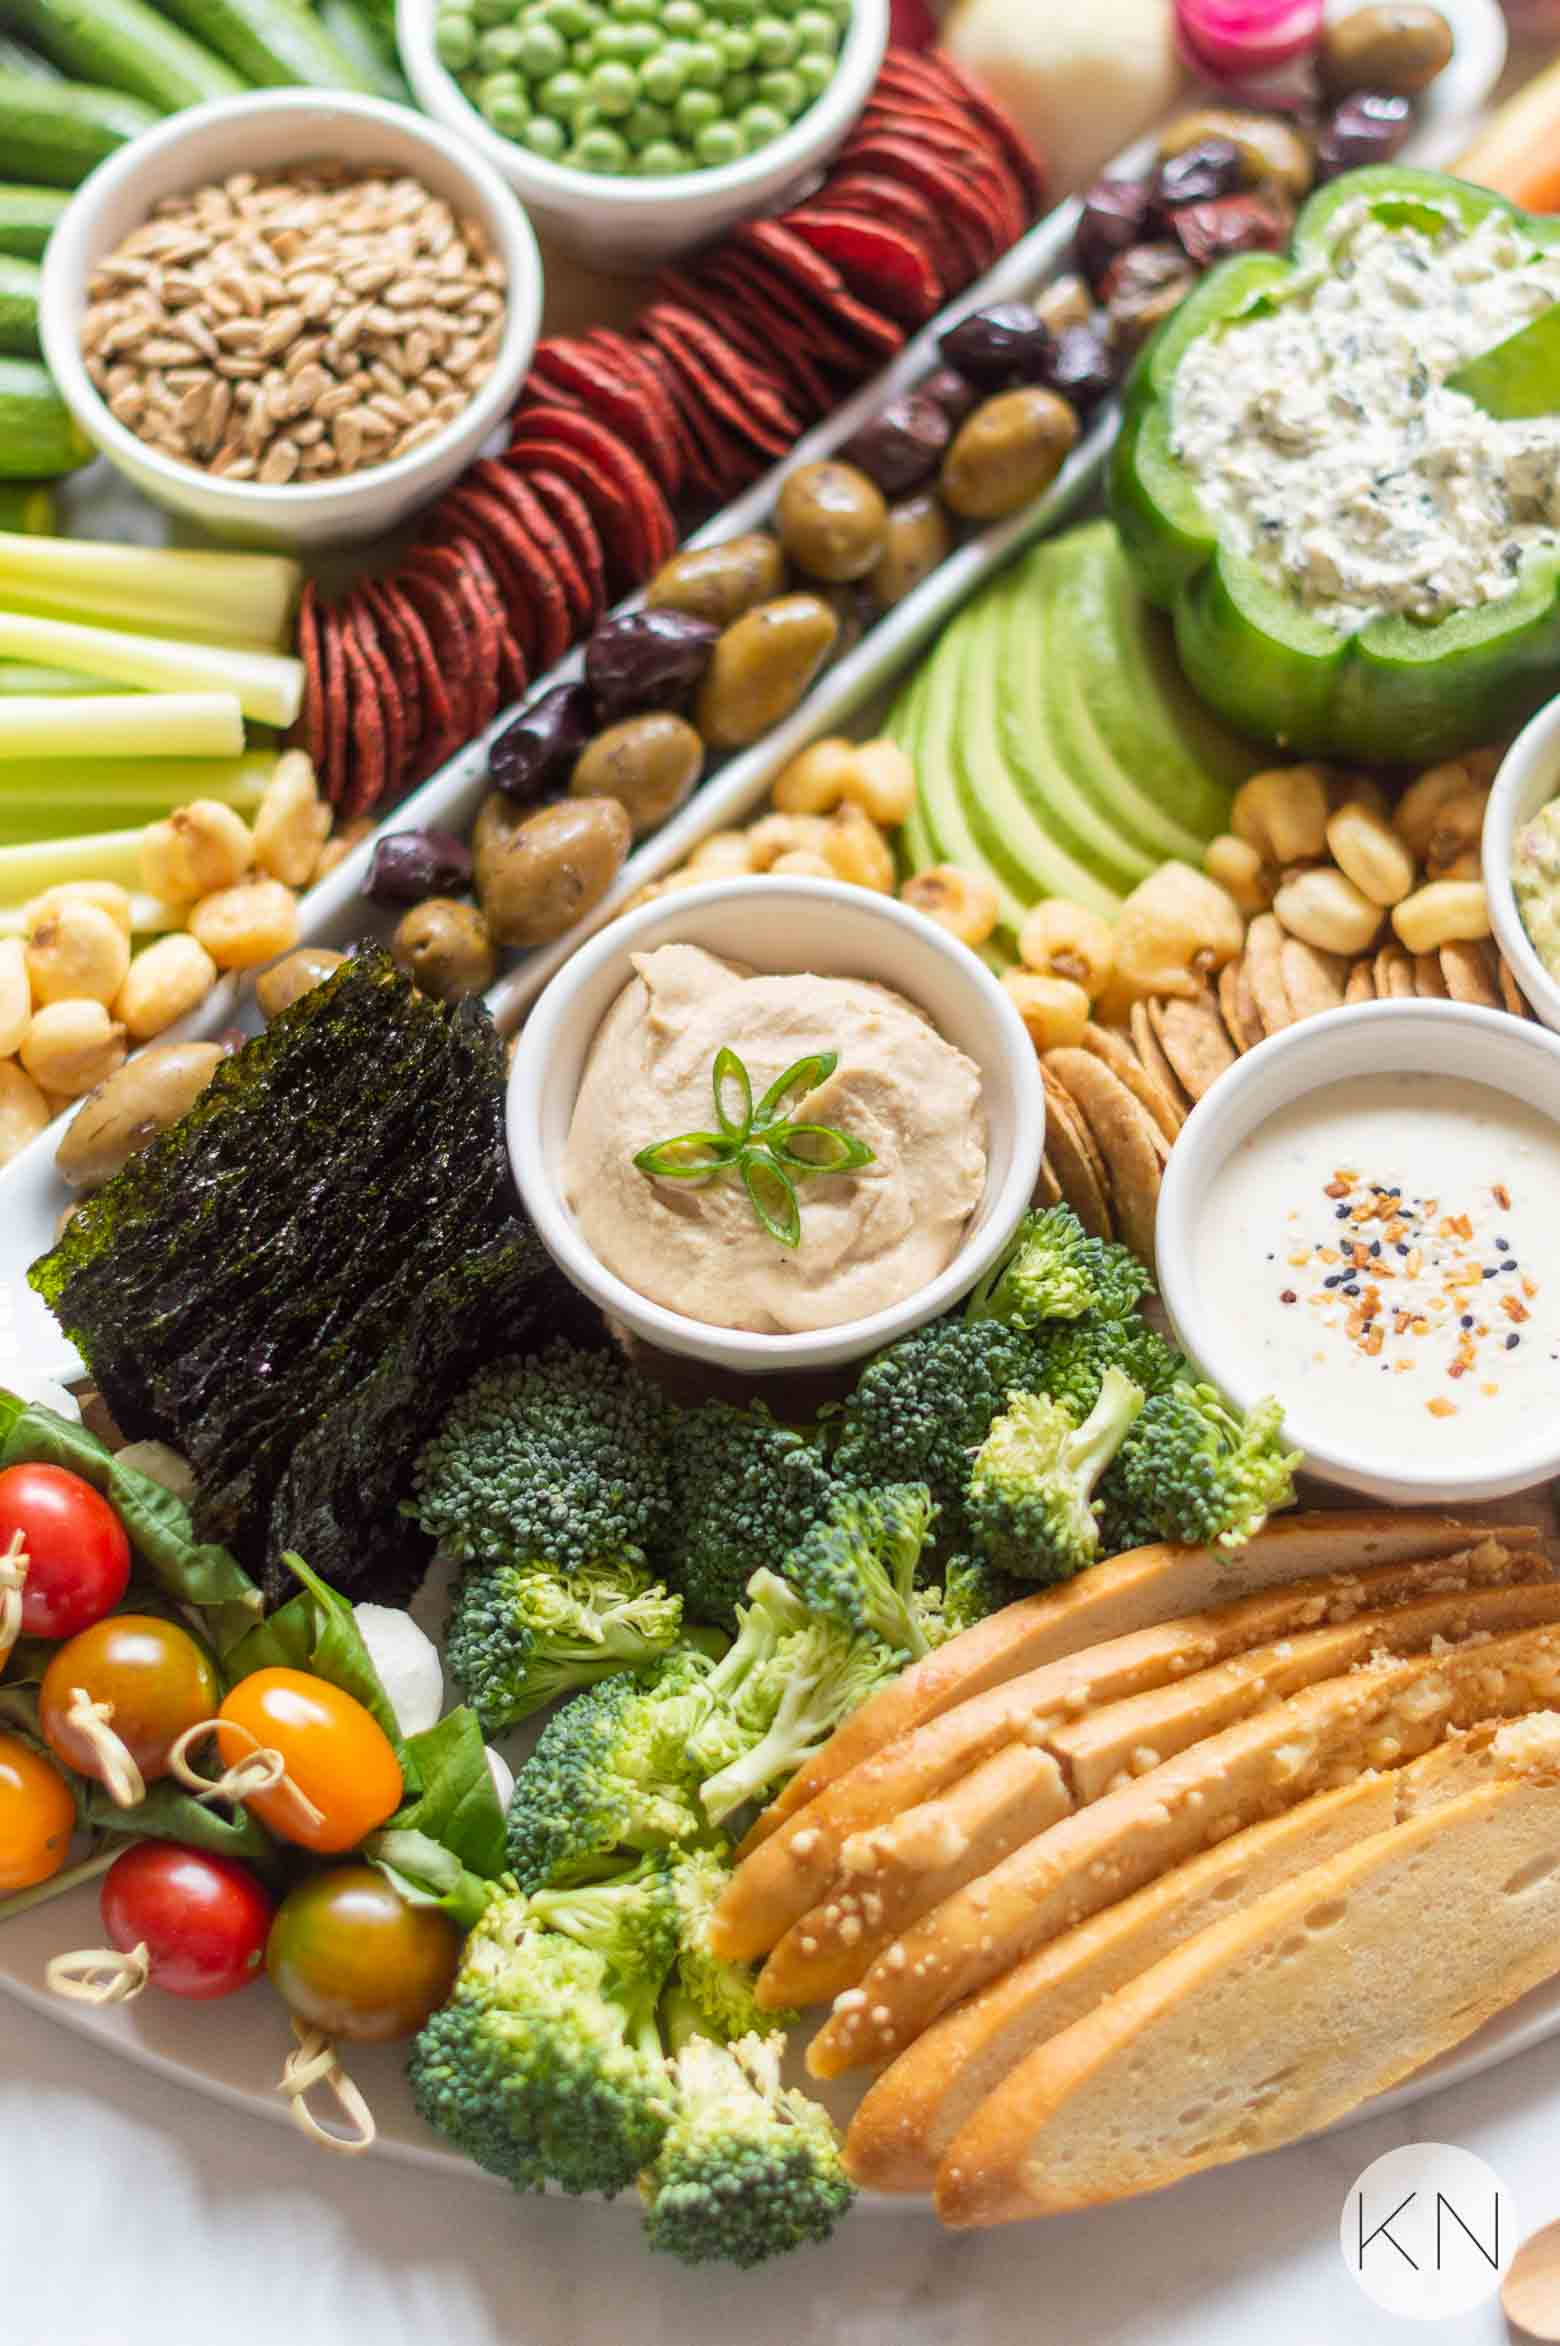 Veggie Board Ideas with all the Toppings and Dips!